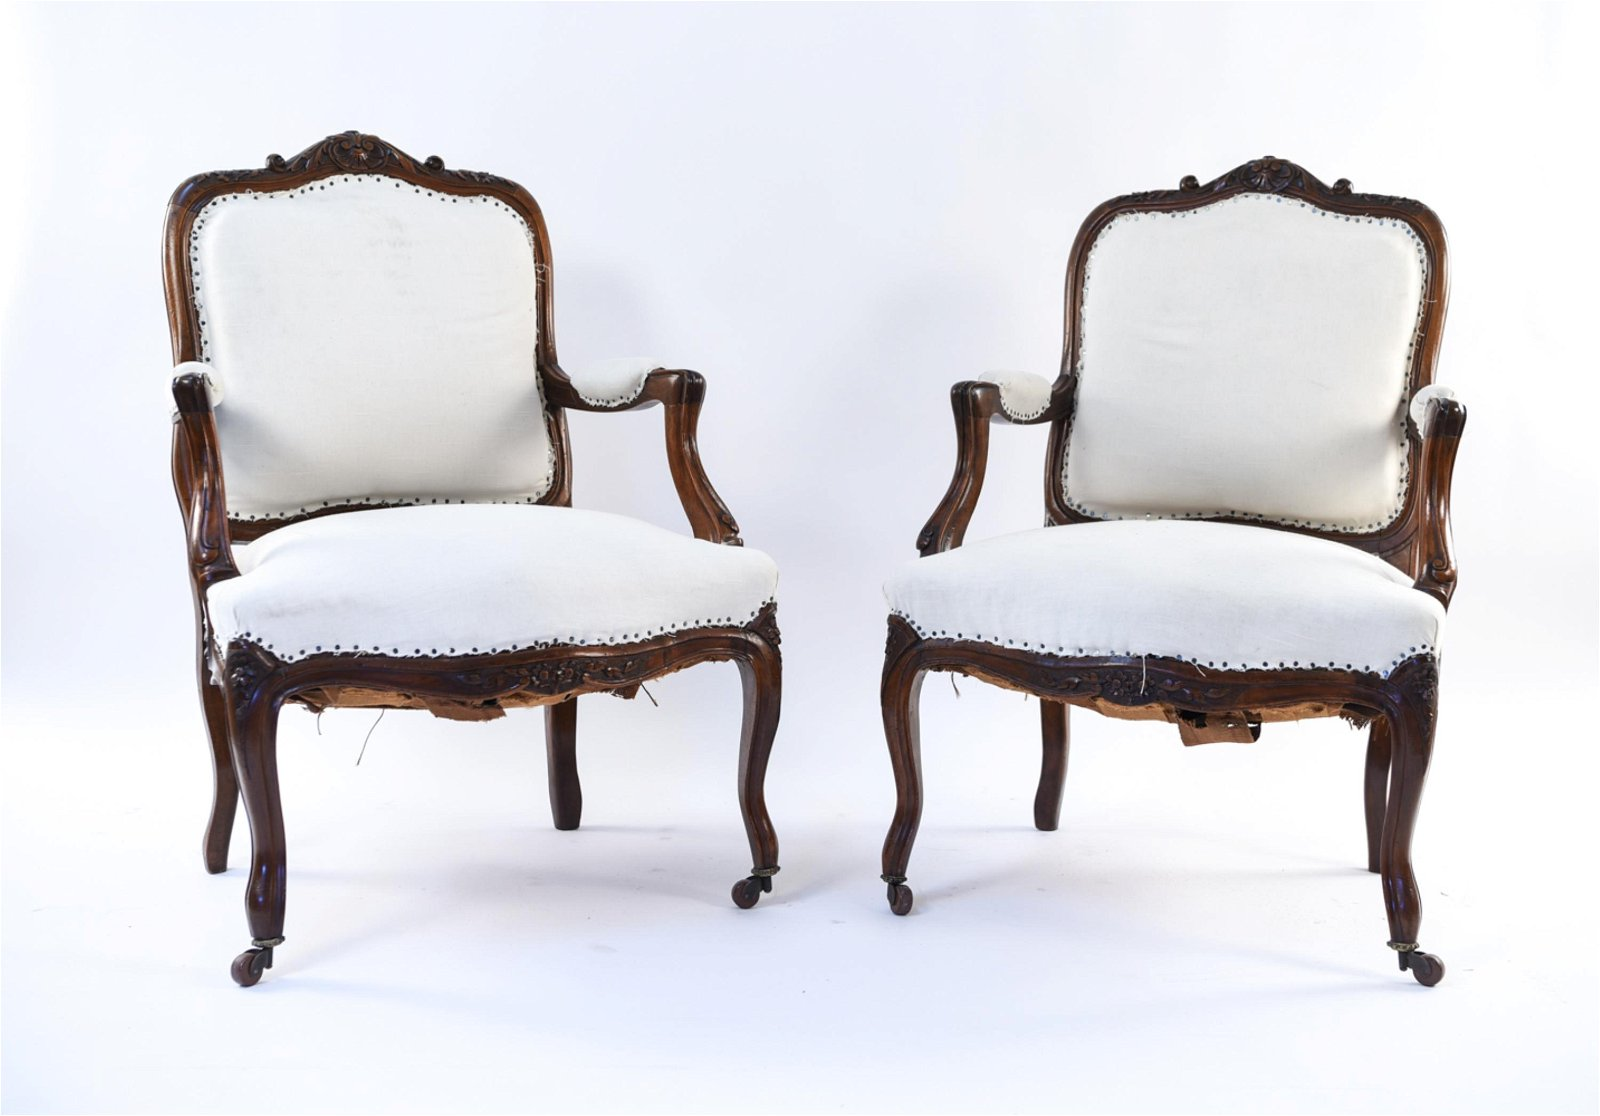 PAIR OF FRENCH LOUIS XV STYLE FAUTEUIL CHAIRS